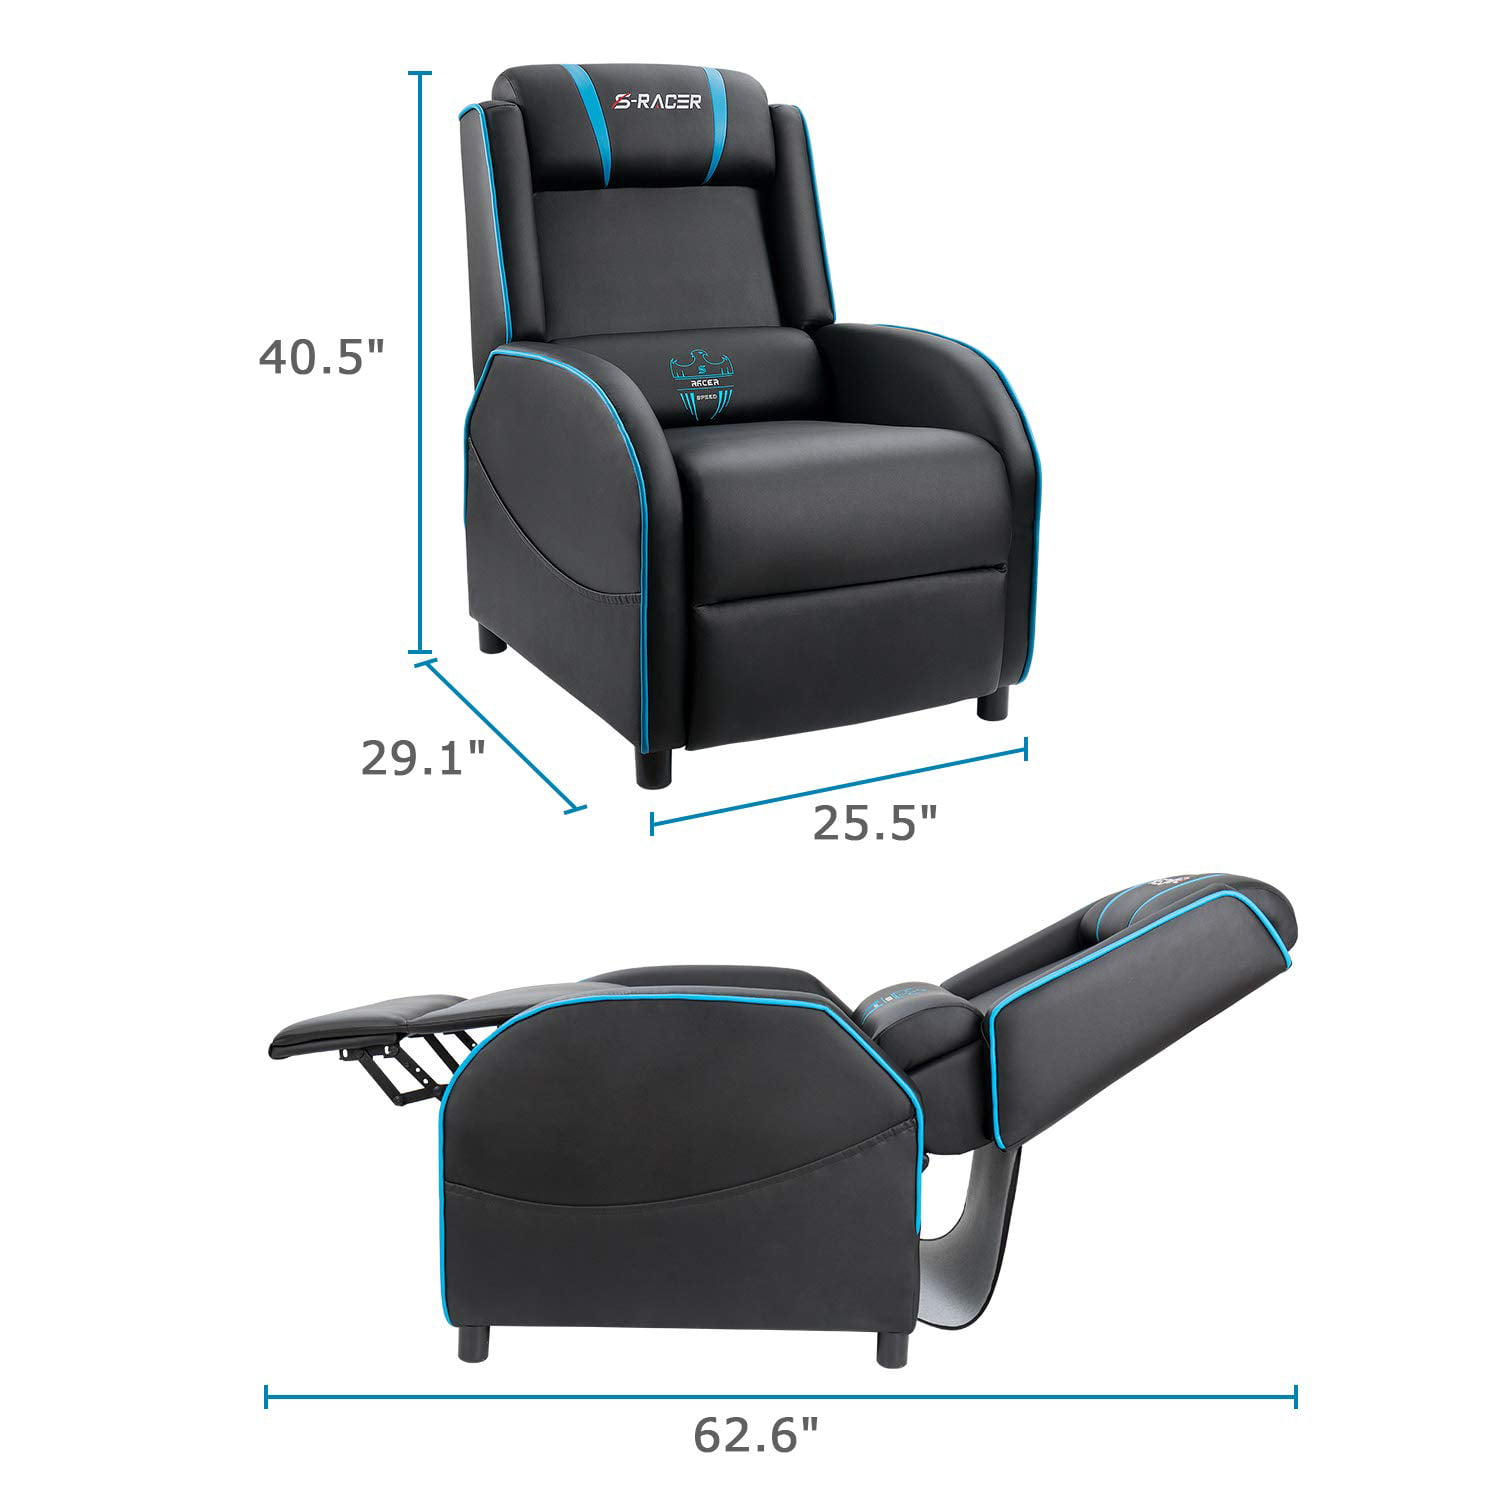 Picture of: Homall Gaming Recliner Chair With Pu Leather Black Blue Walmart Com Walmart Com